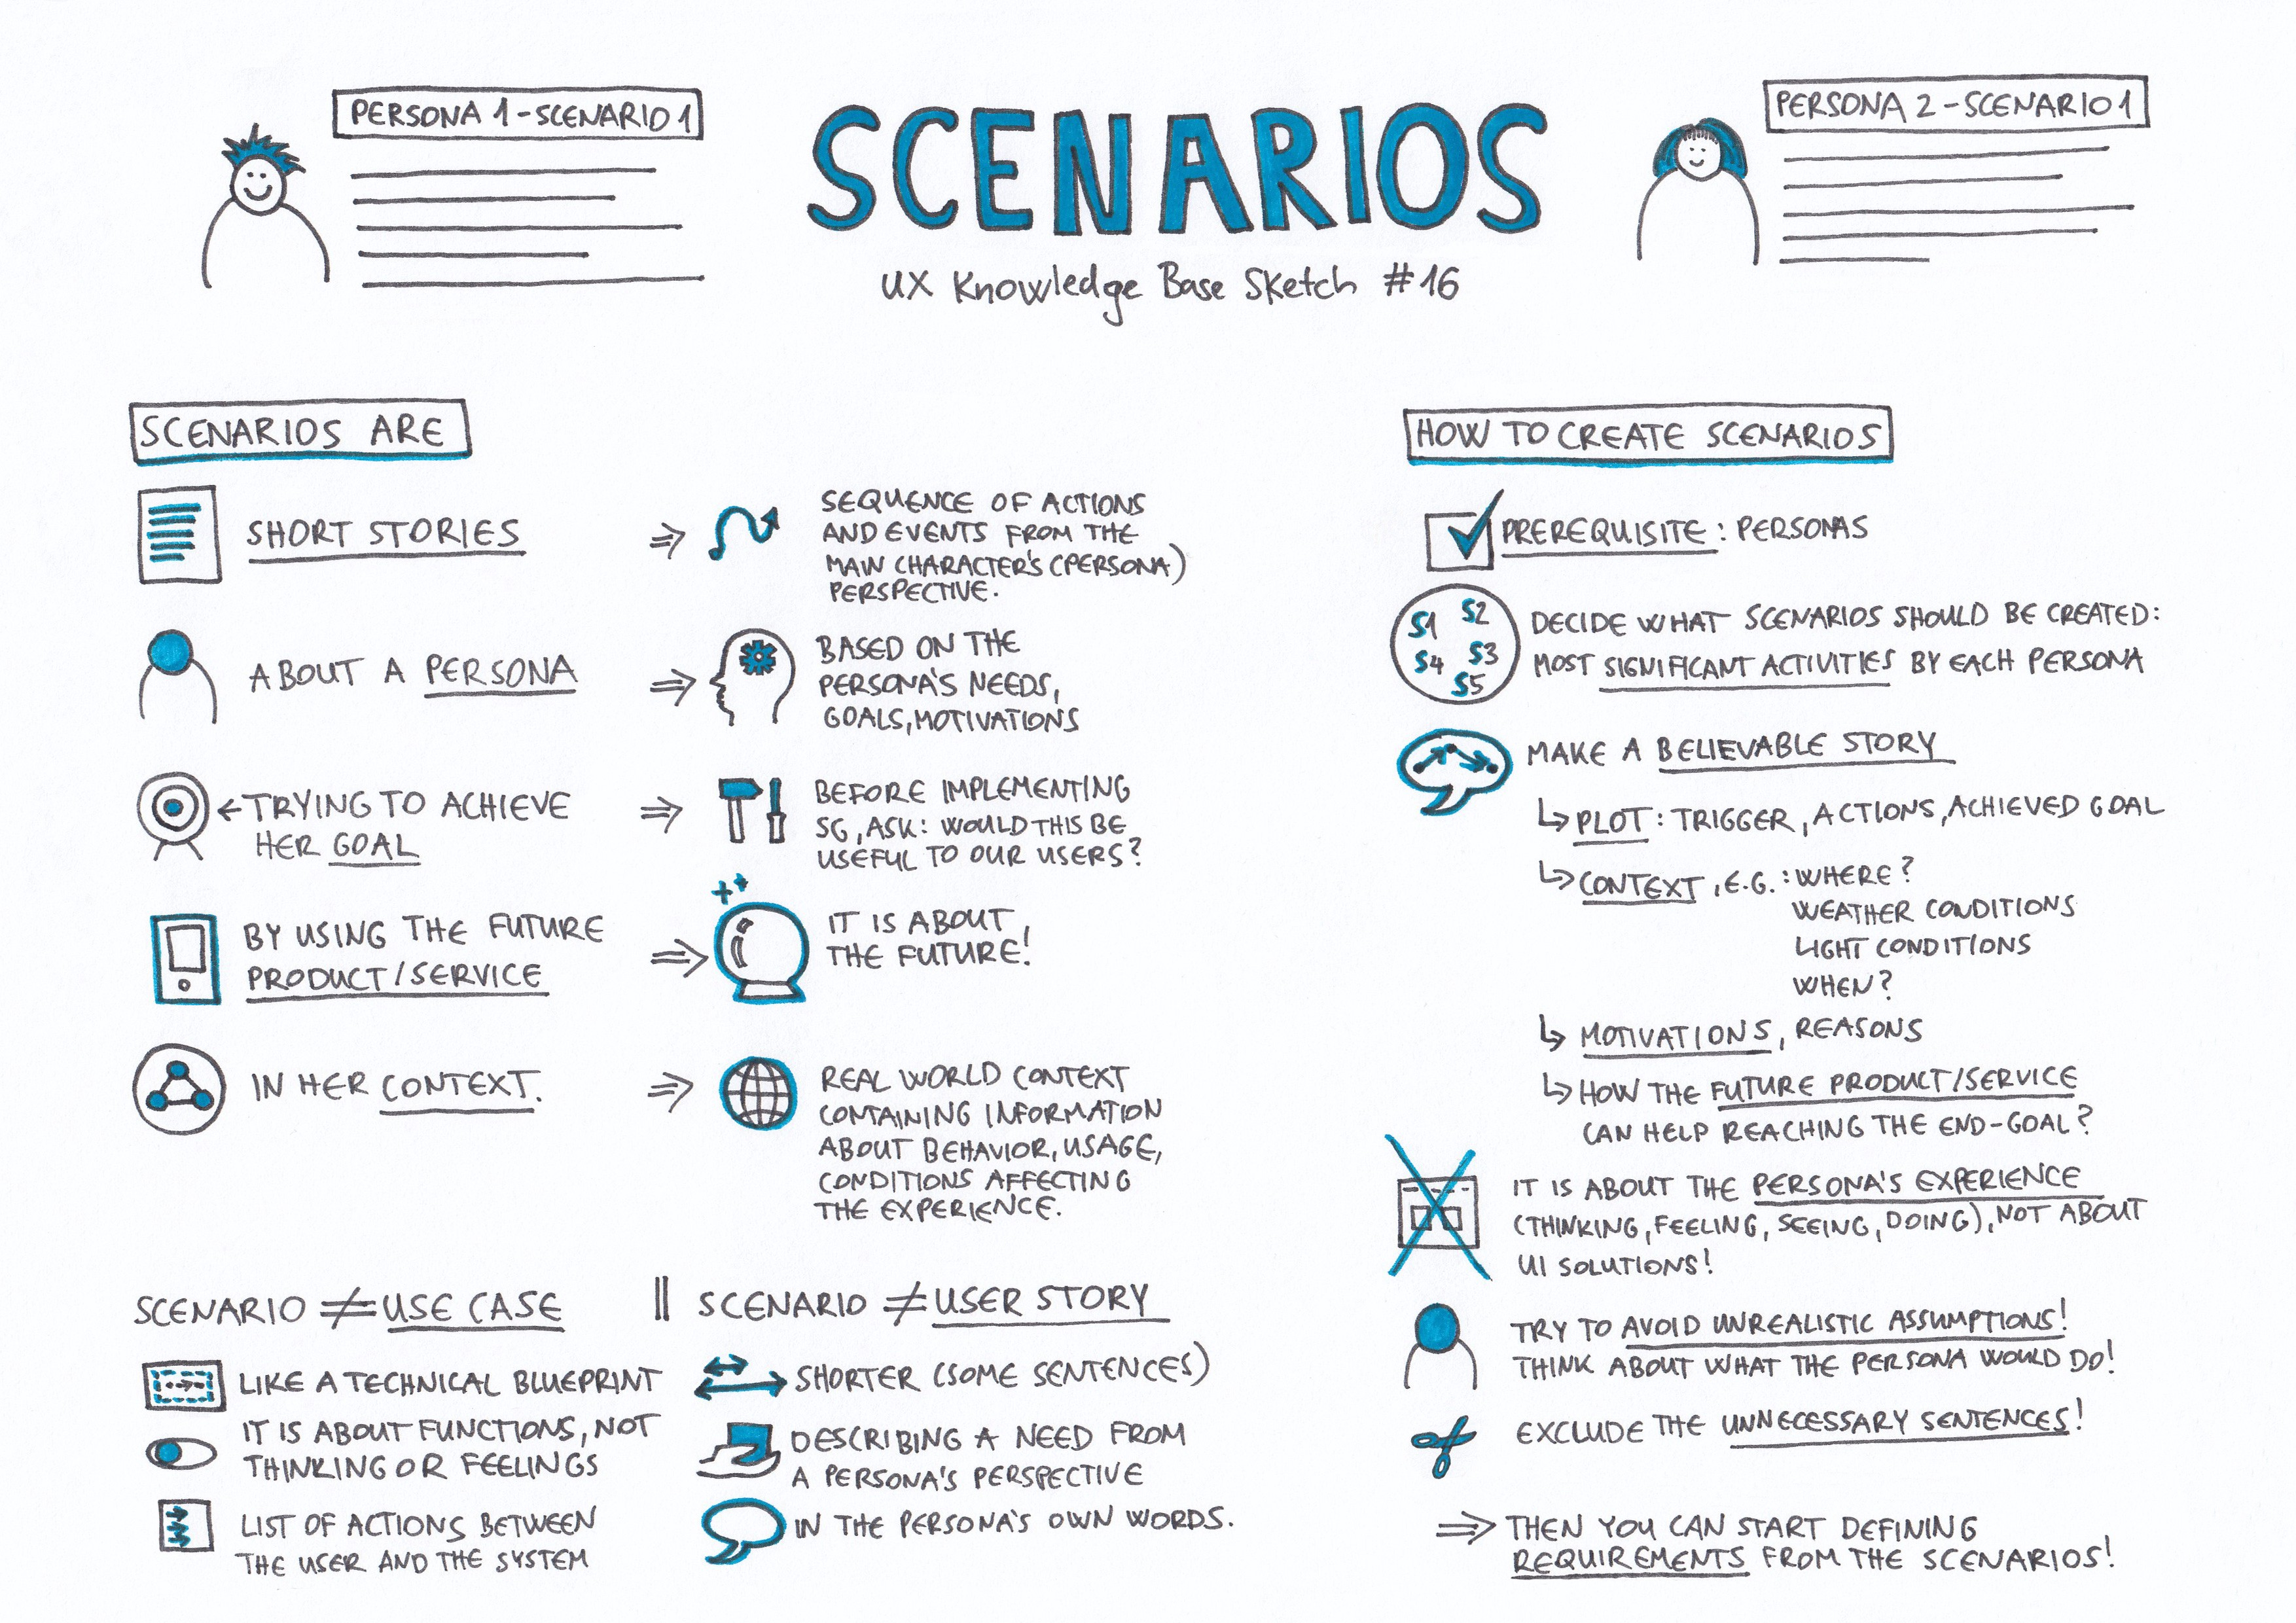 Scenarios Ux Knowledge Base Sketch 16